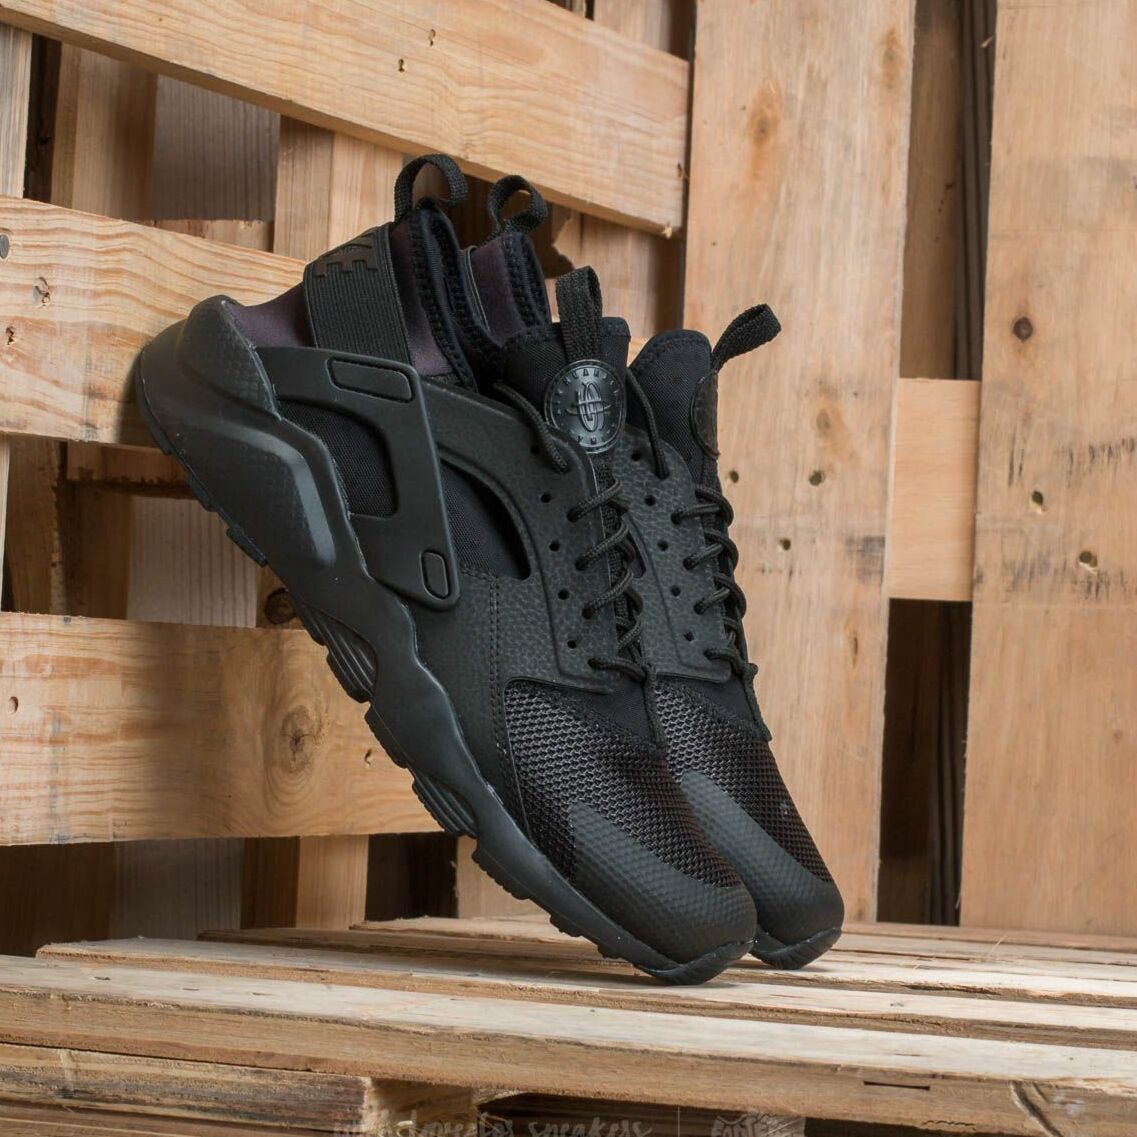 Nike Air Huarache Run Ultra Gs Black/ Black EUR 36.5